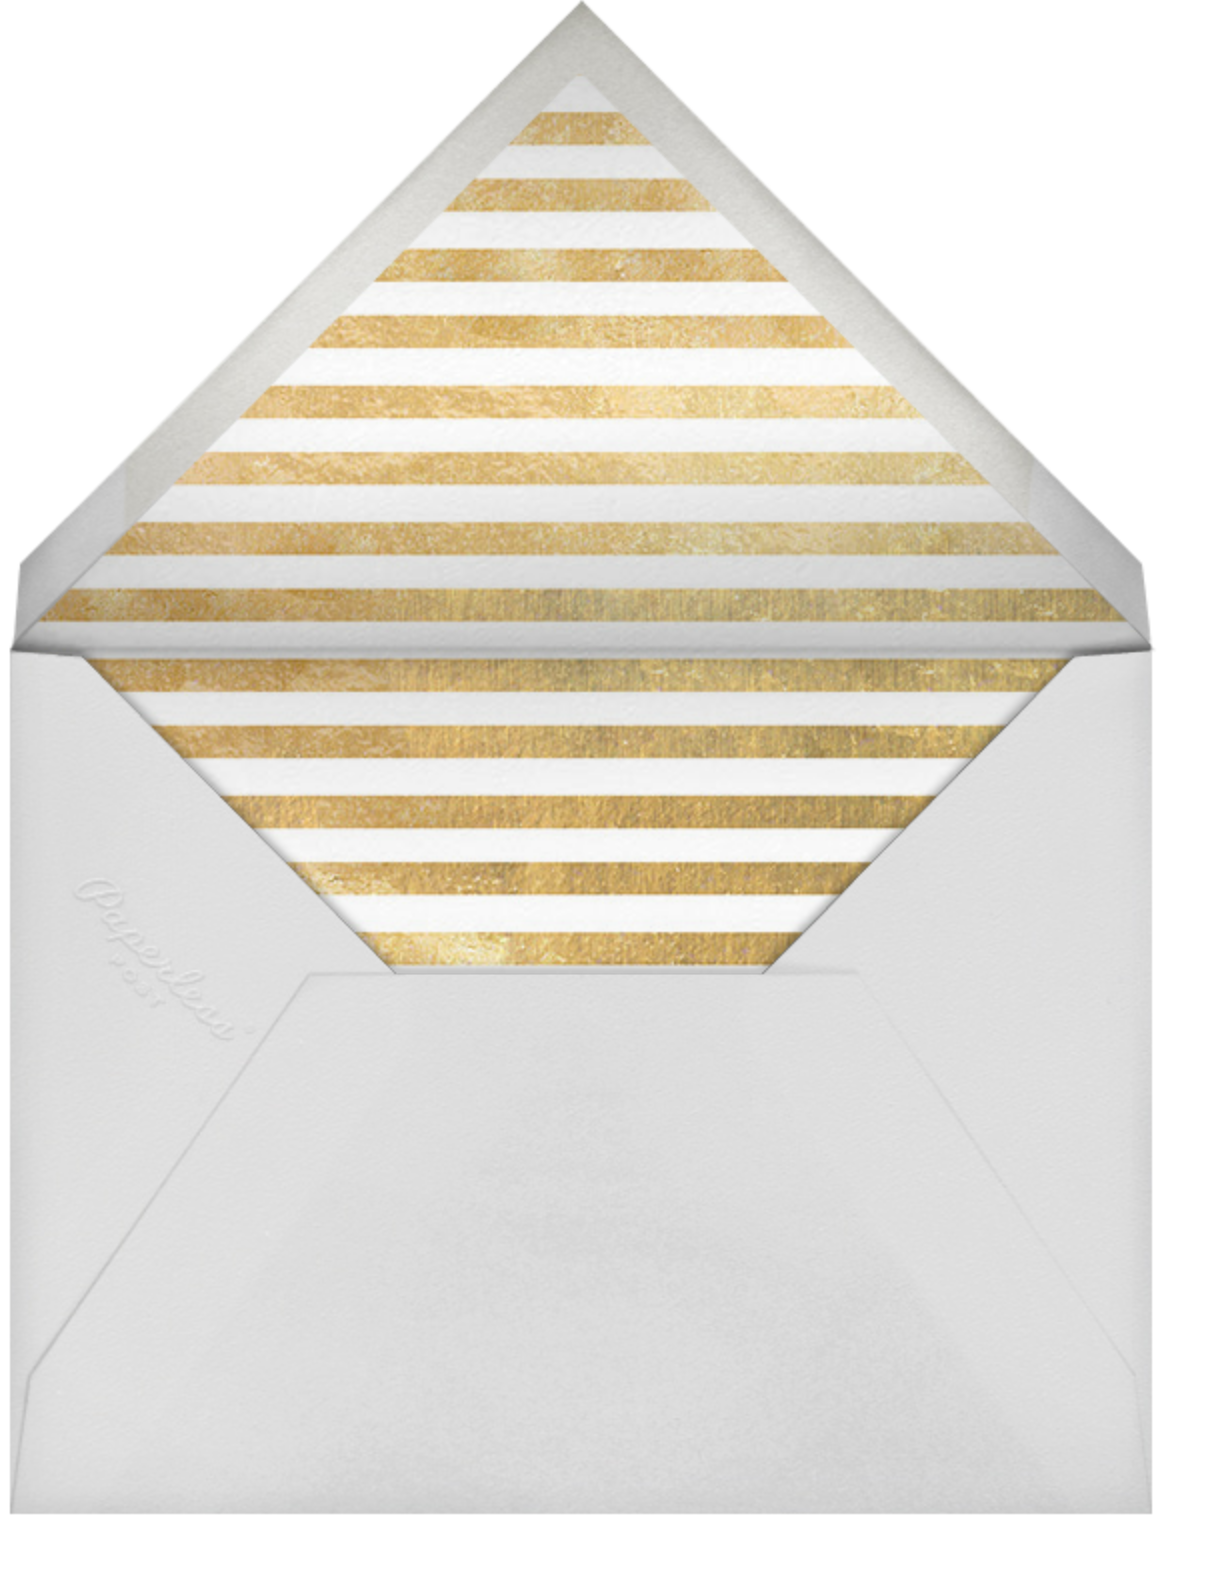 Evergreen Stripes - Gold/White - kate spade new york - Christmas party - envelope back